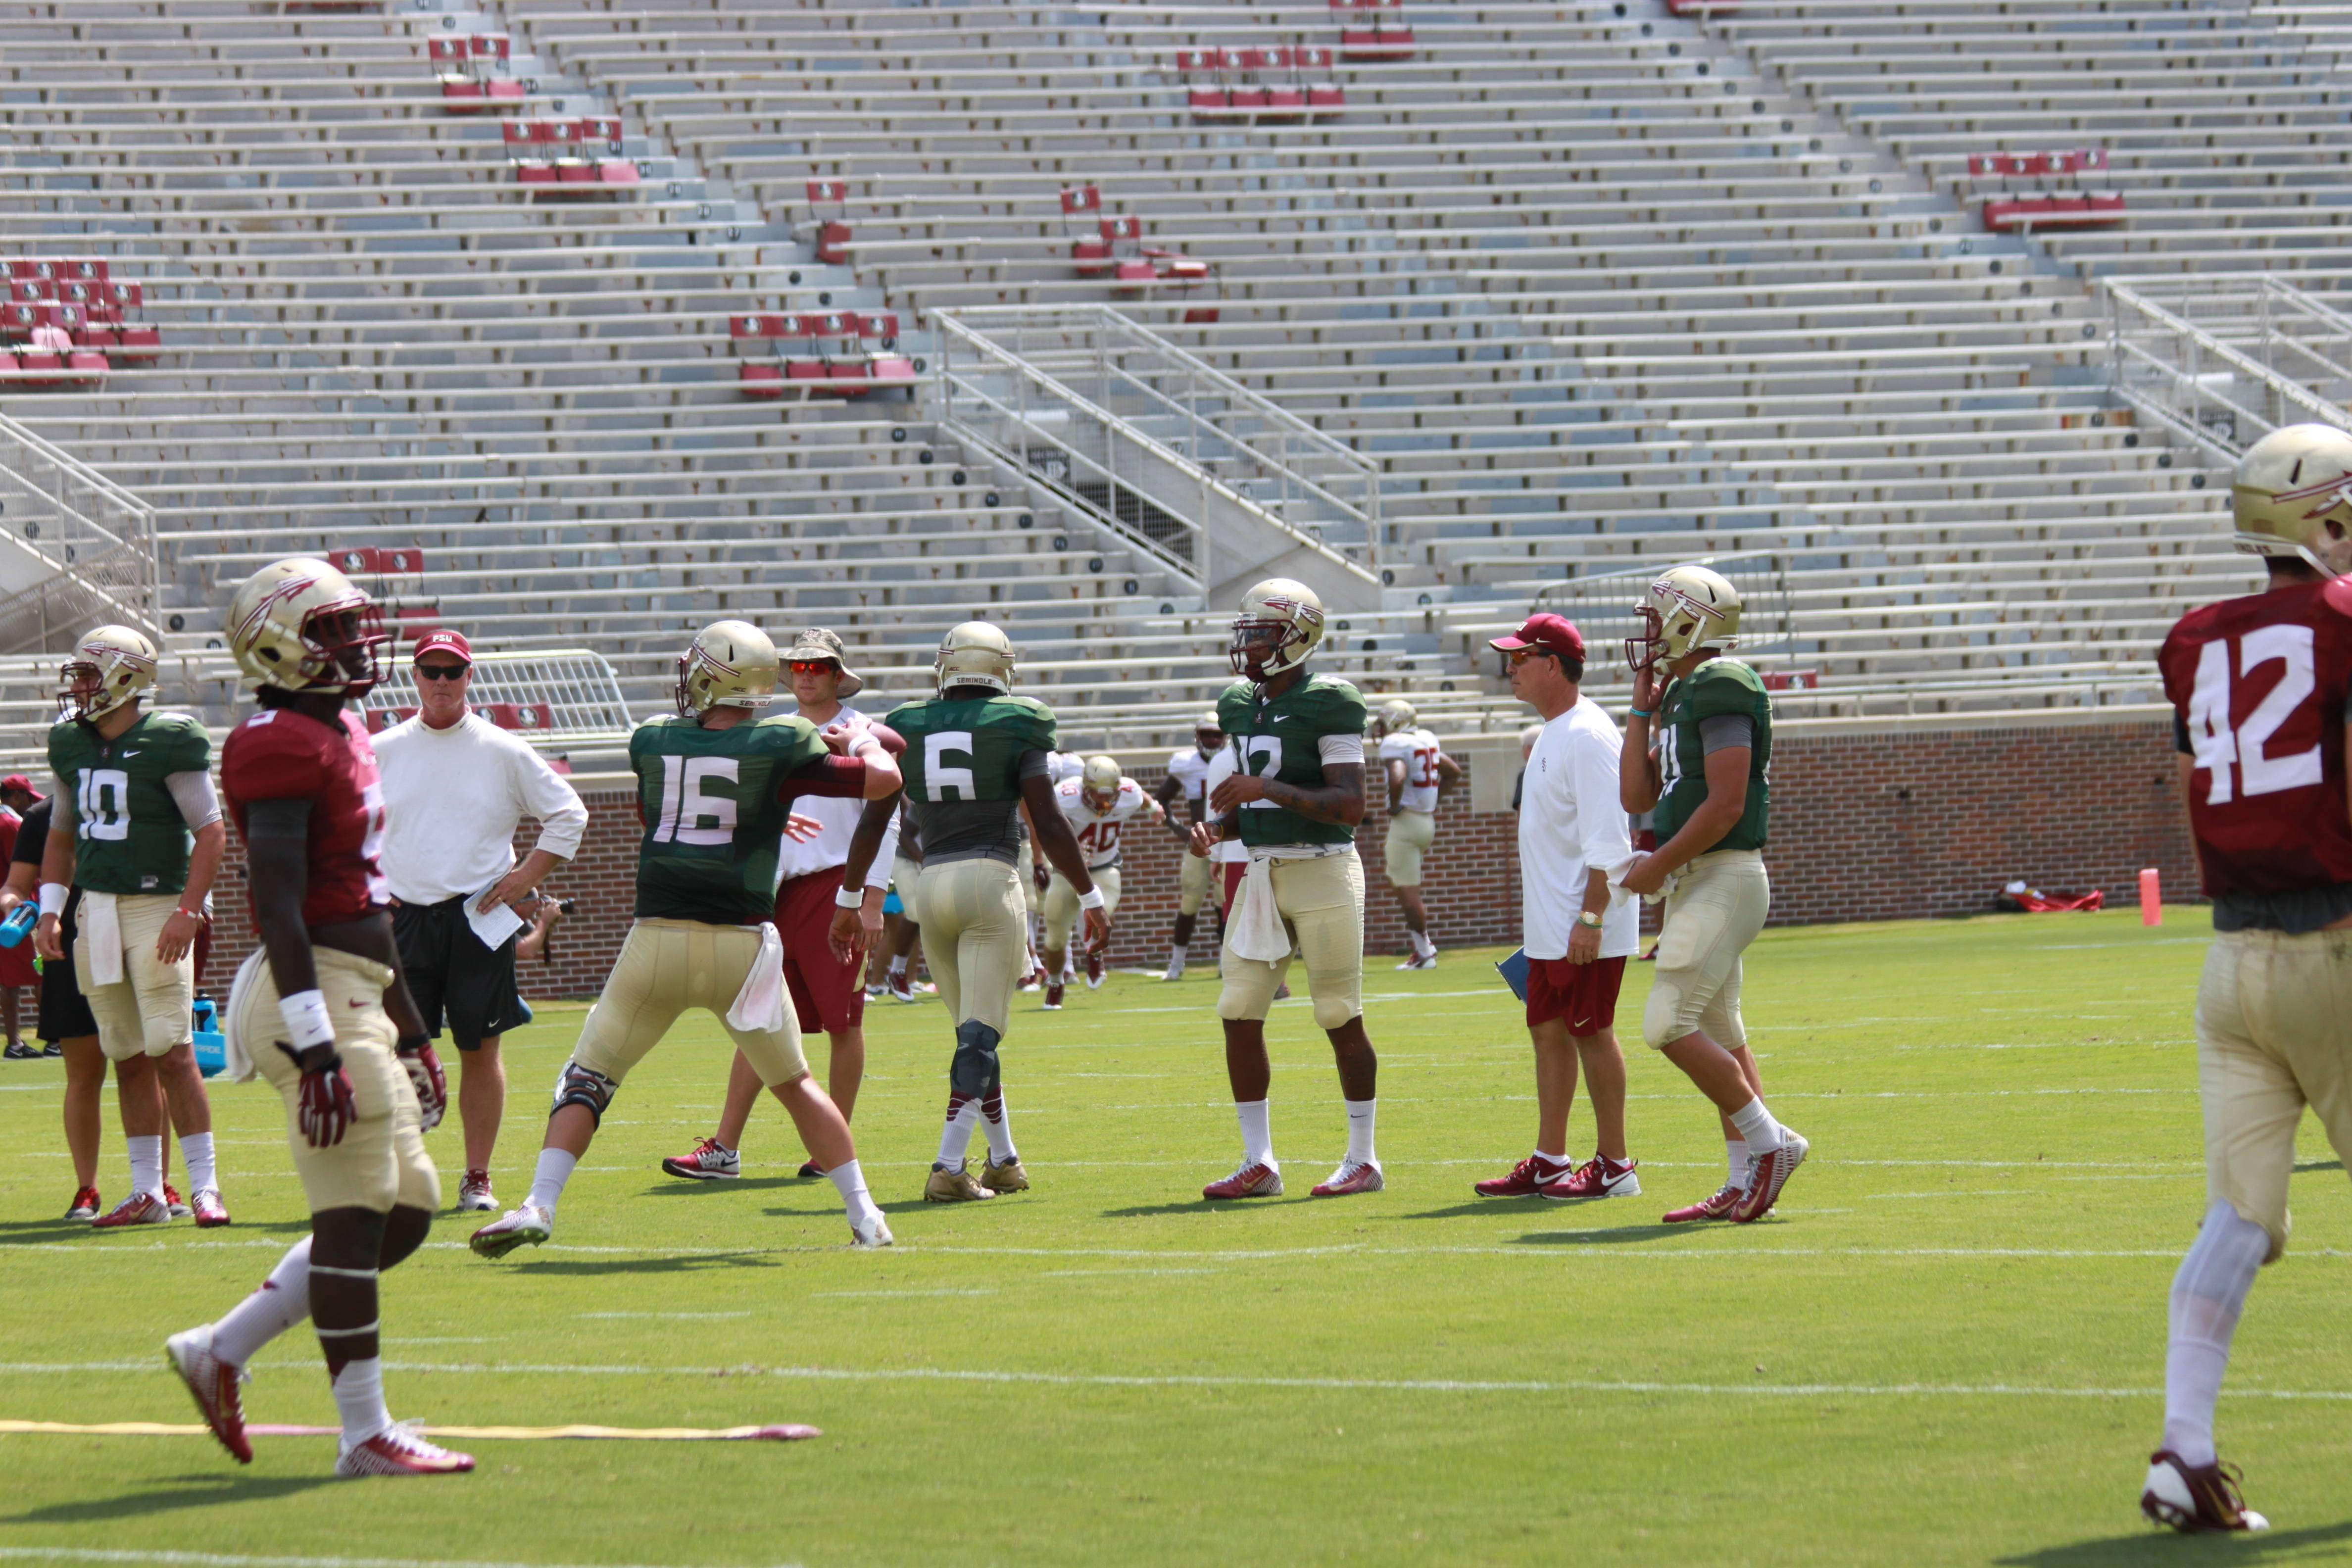 Florida State Football – Fall Scrimmage August 22, 2015